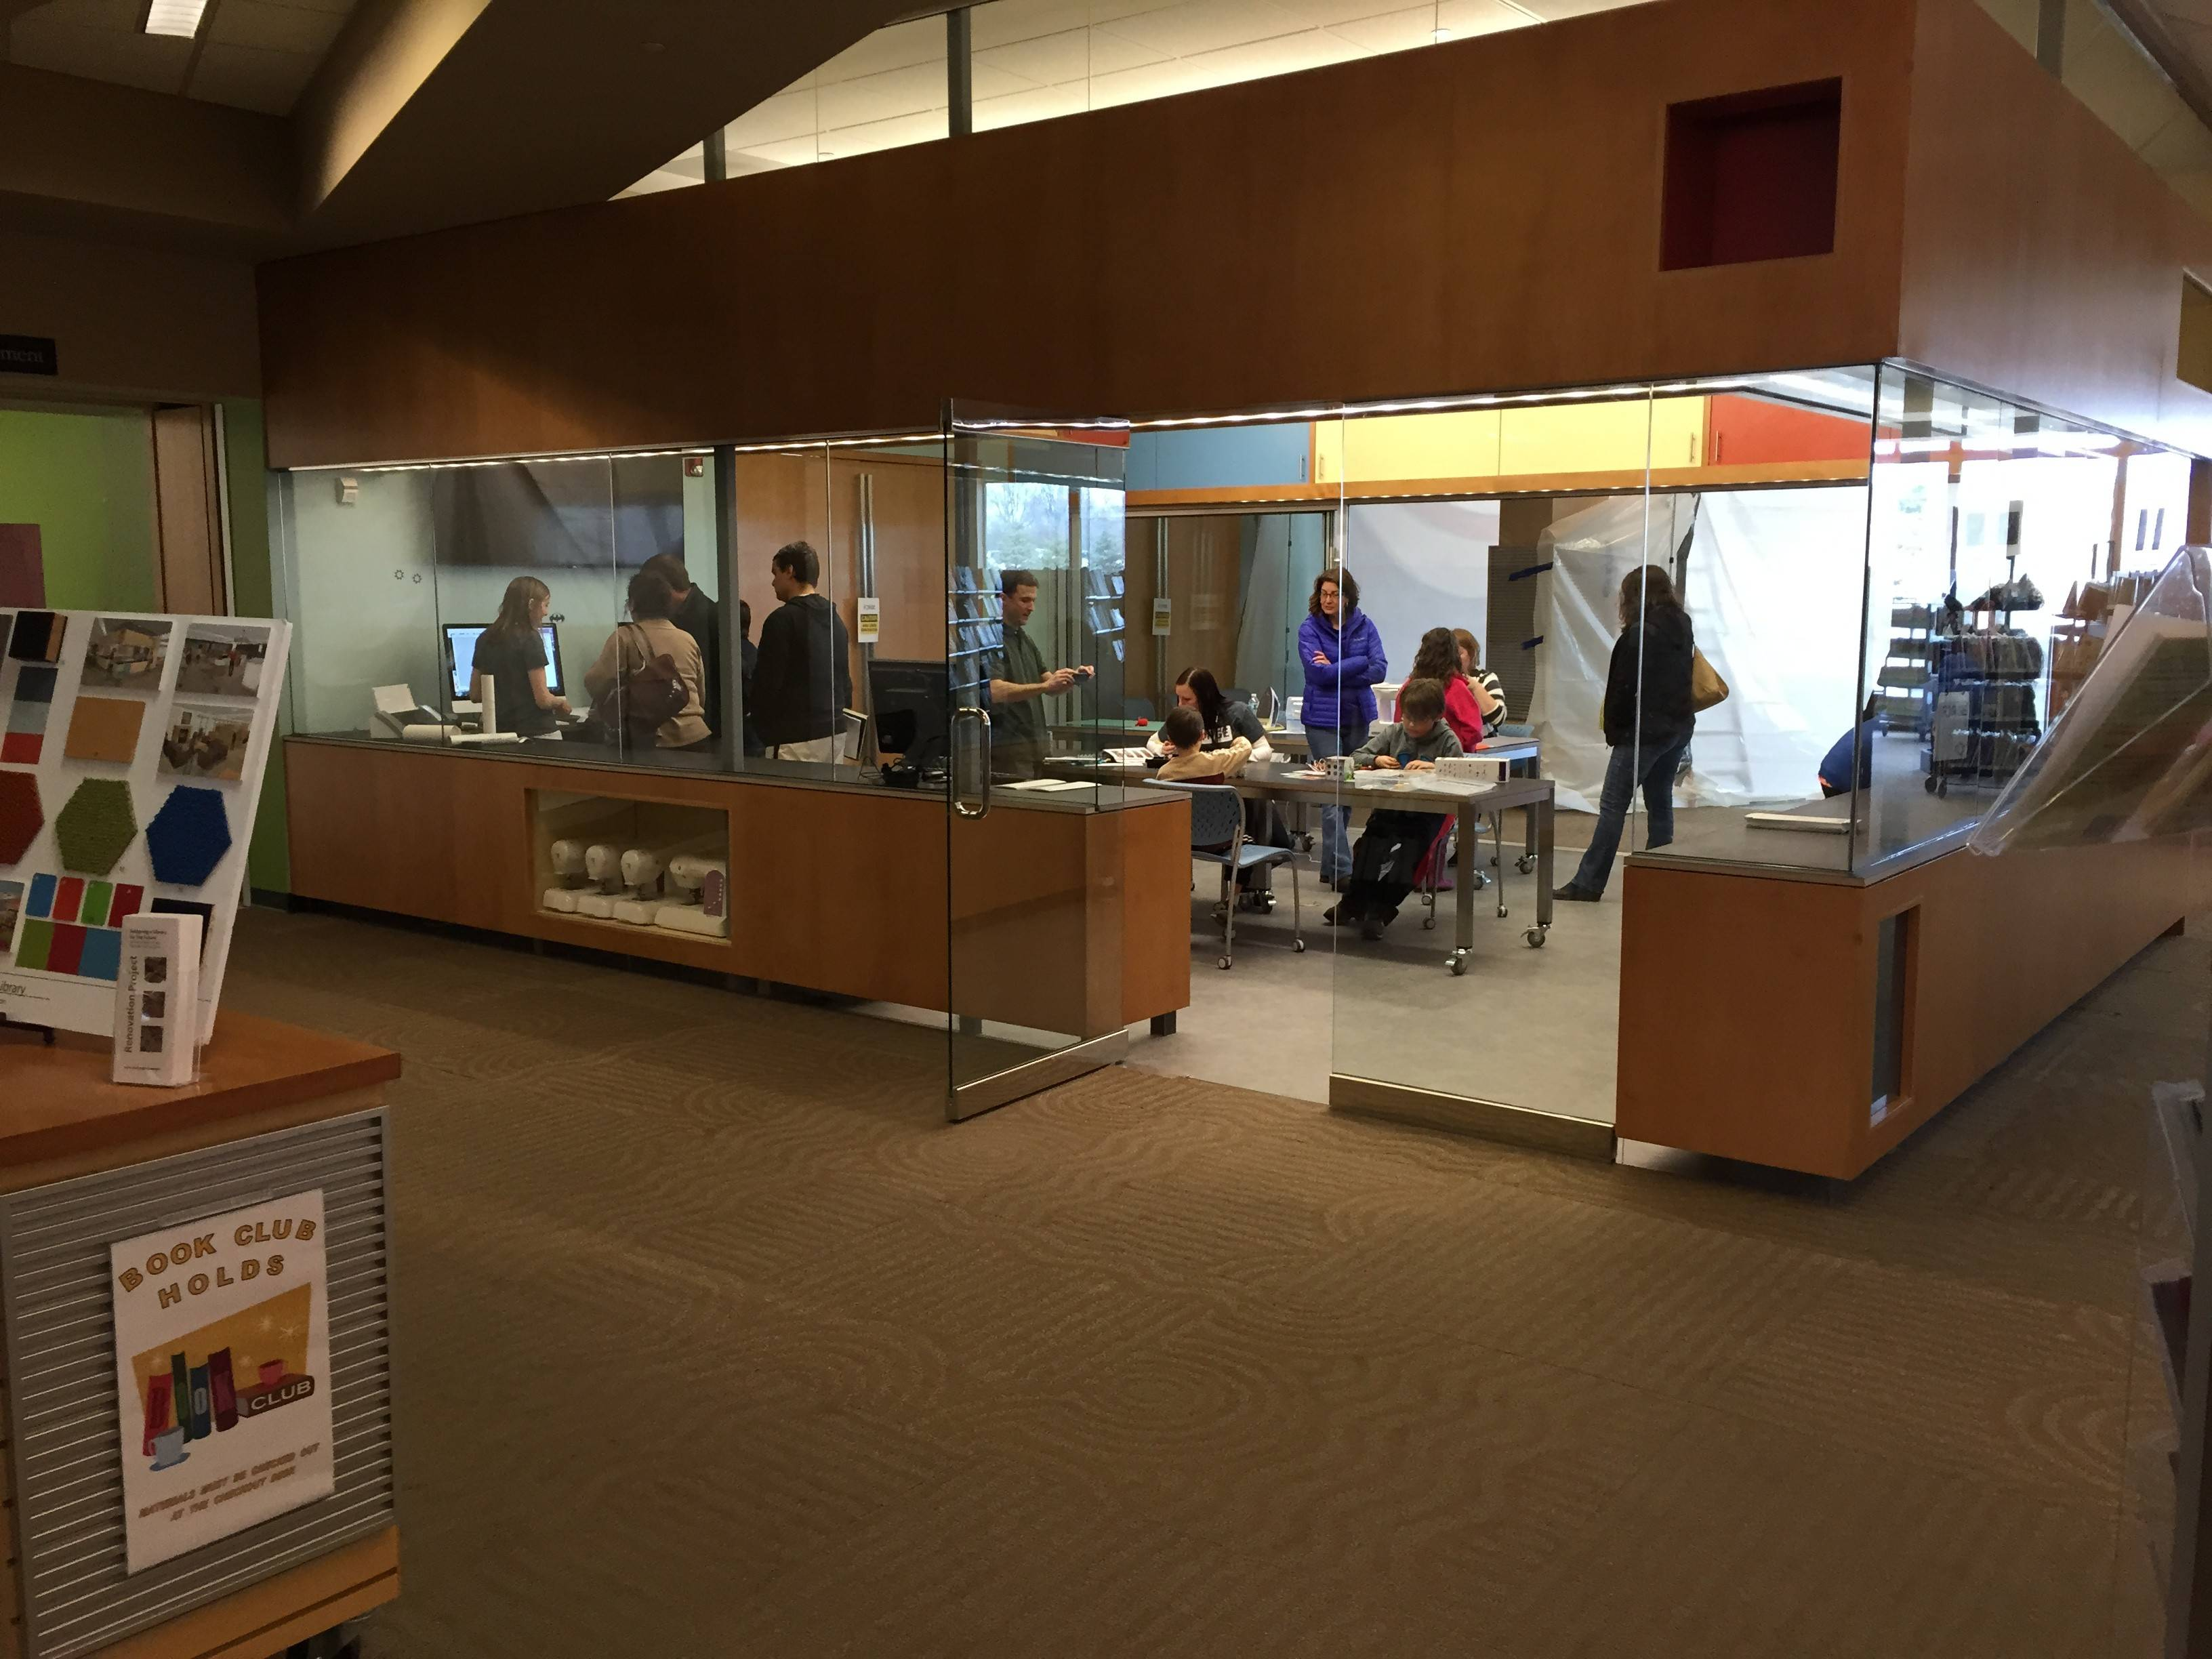 The Ela Area Public Library's new Forge makerspace features a 3-D printer, a vinyl cutter and other equipment patrons can use to create projects.